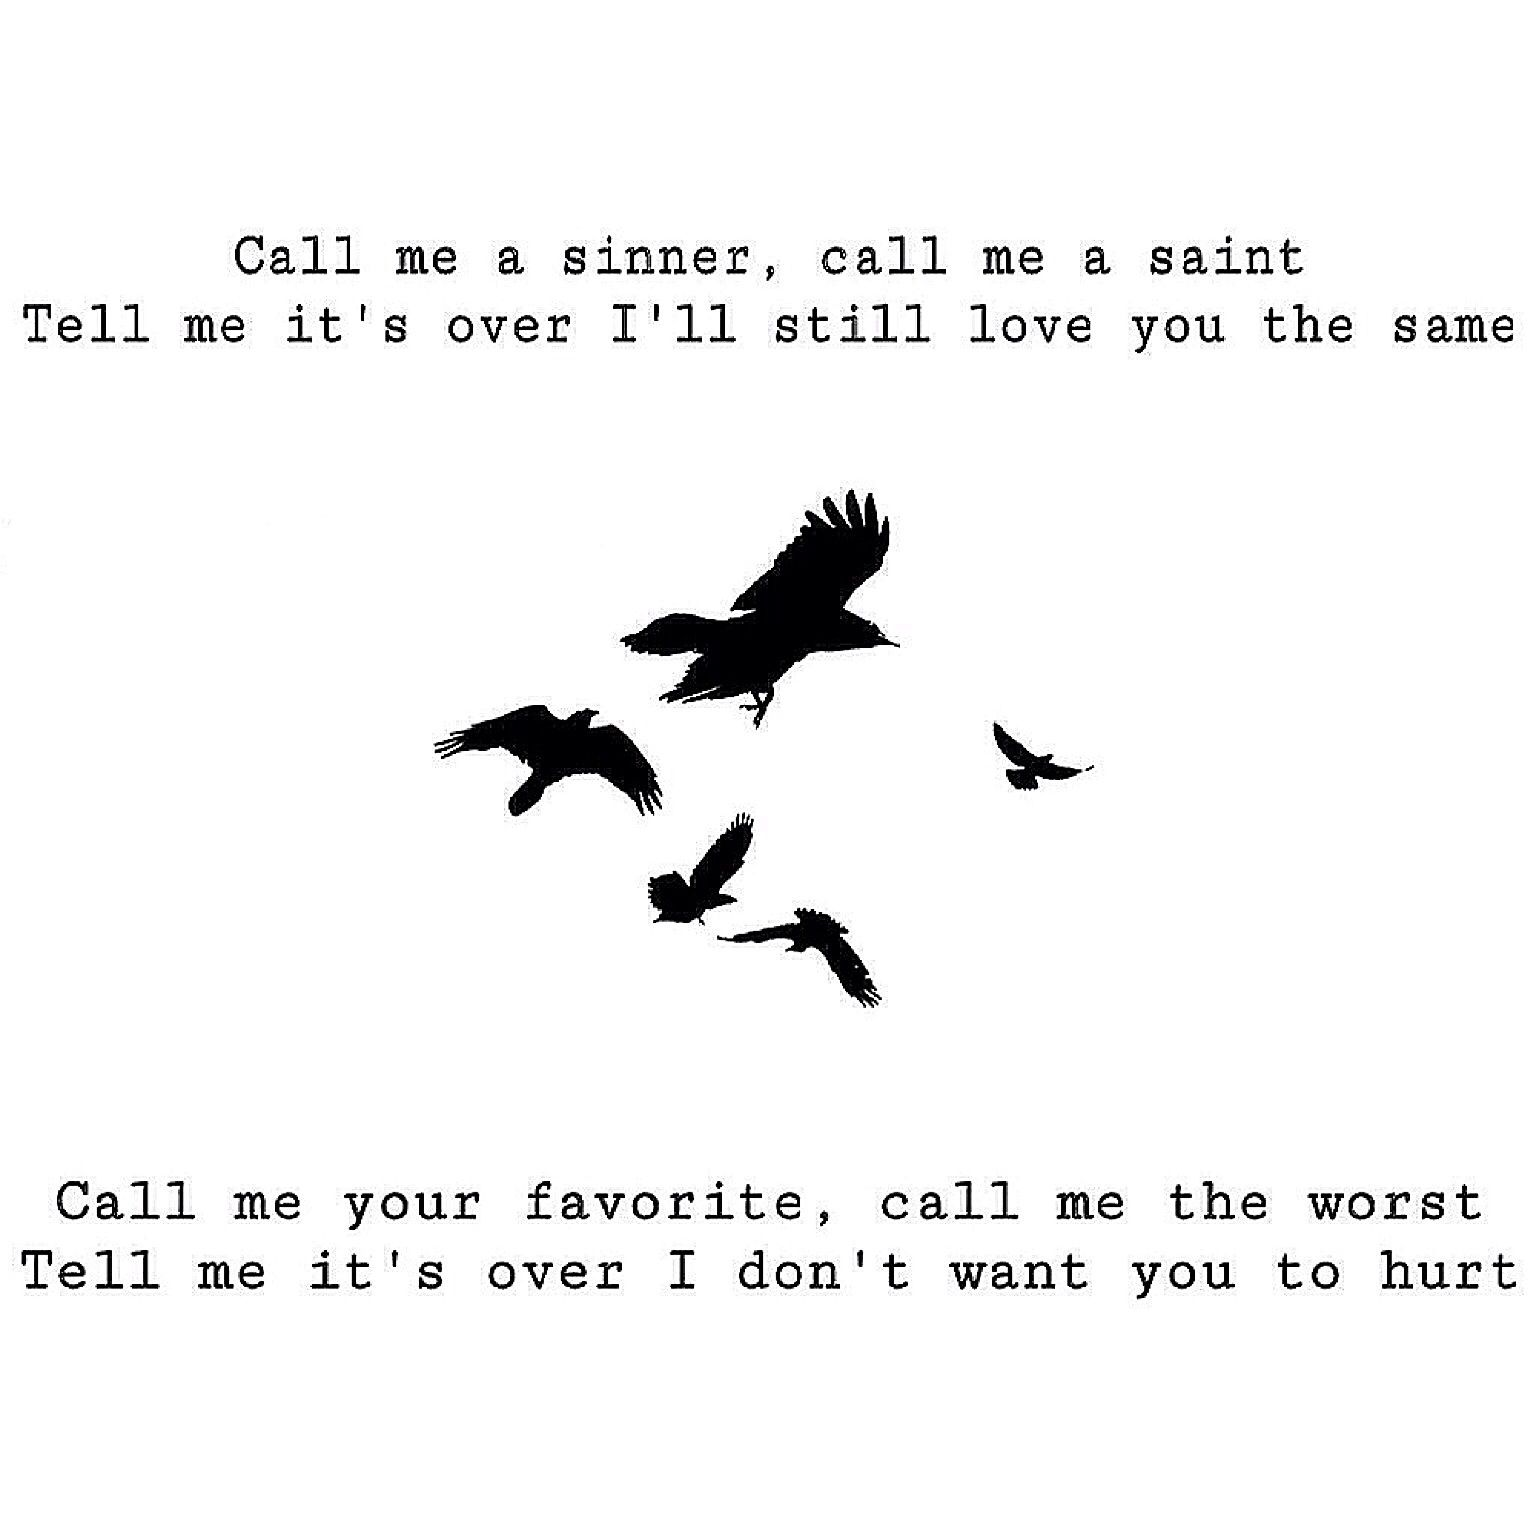 Best Friend Call Quotes: Call Me ... Such A Great Song, EVERYONE